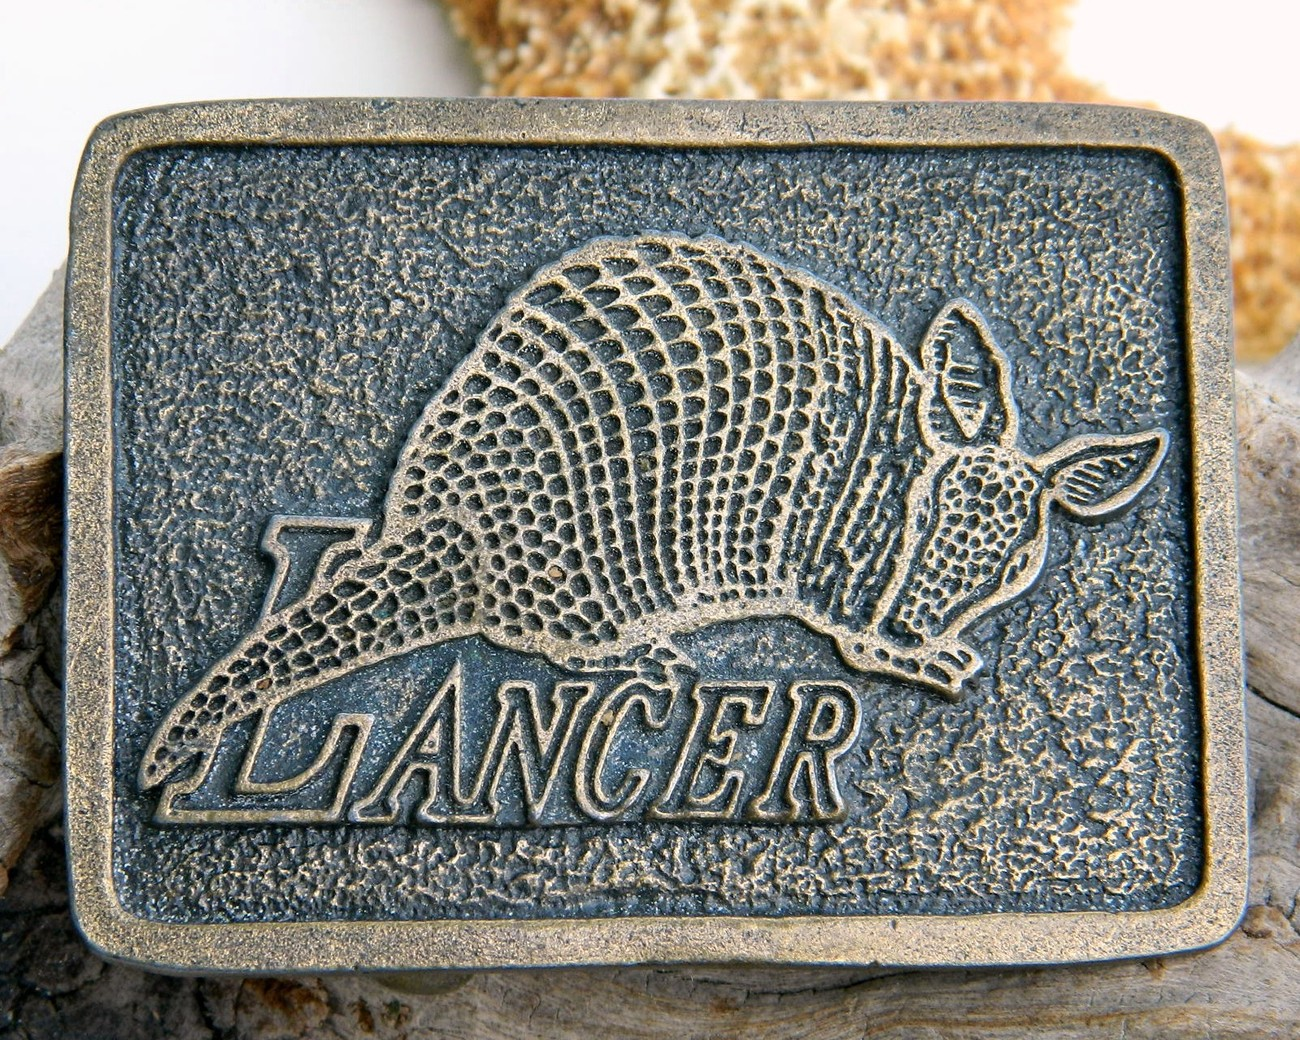 Primary image for Vintage Lancer Texas Armadillo Belt Buckle Brass 1970s